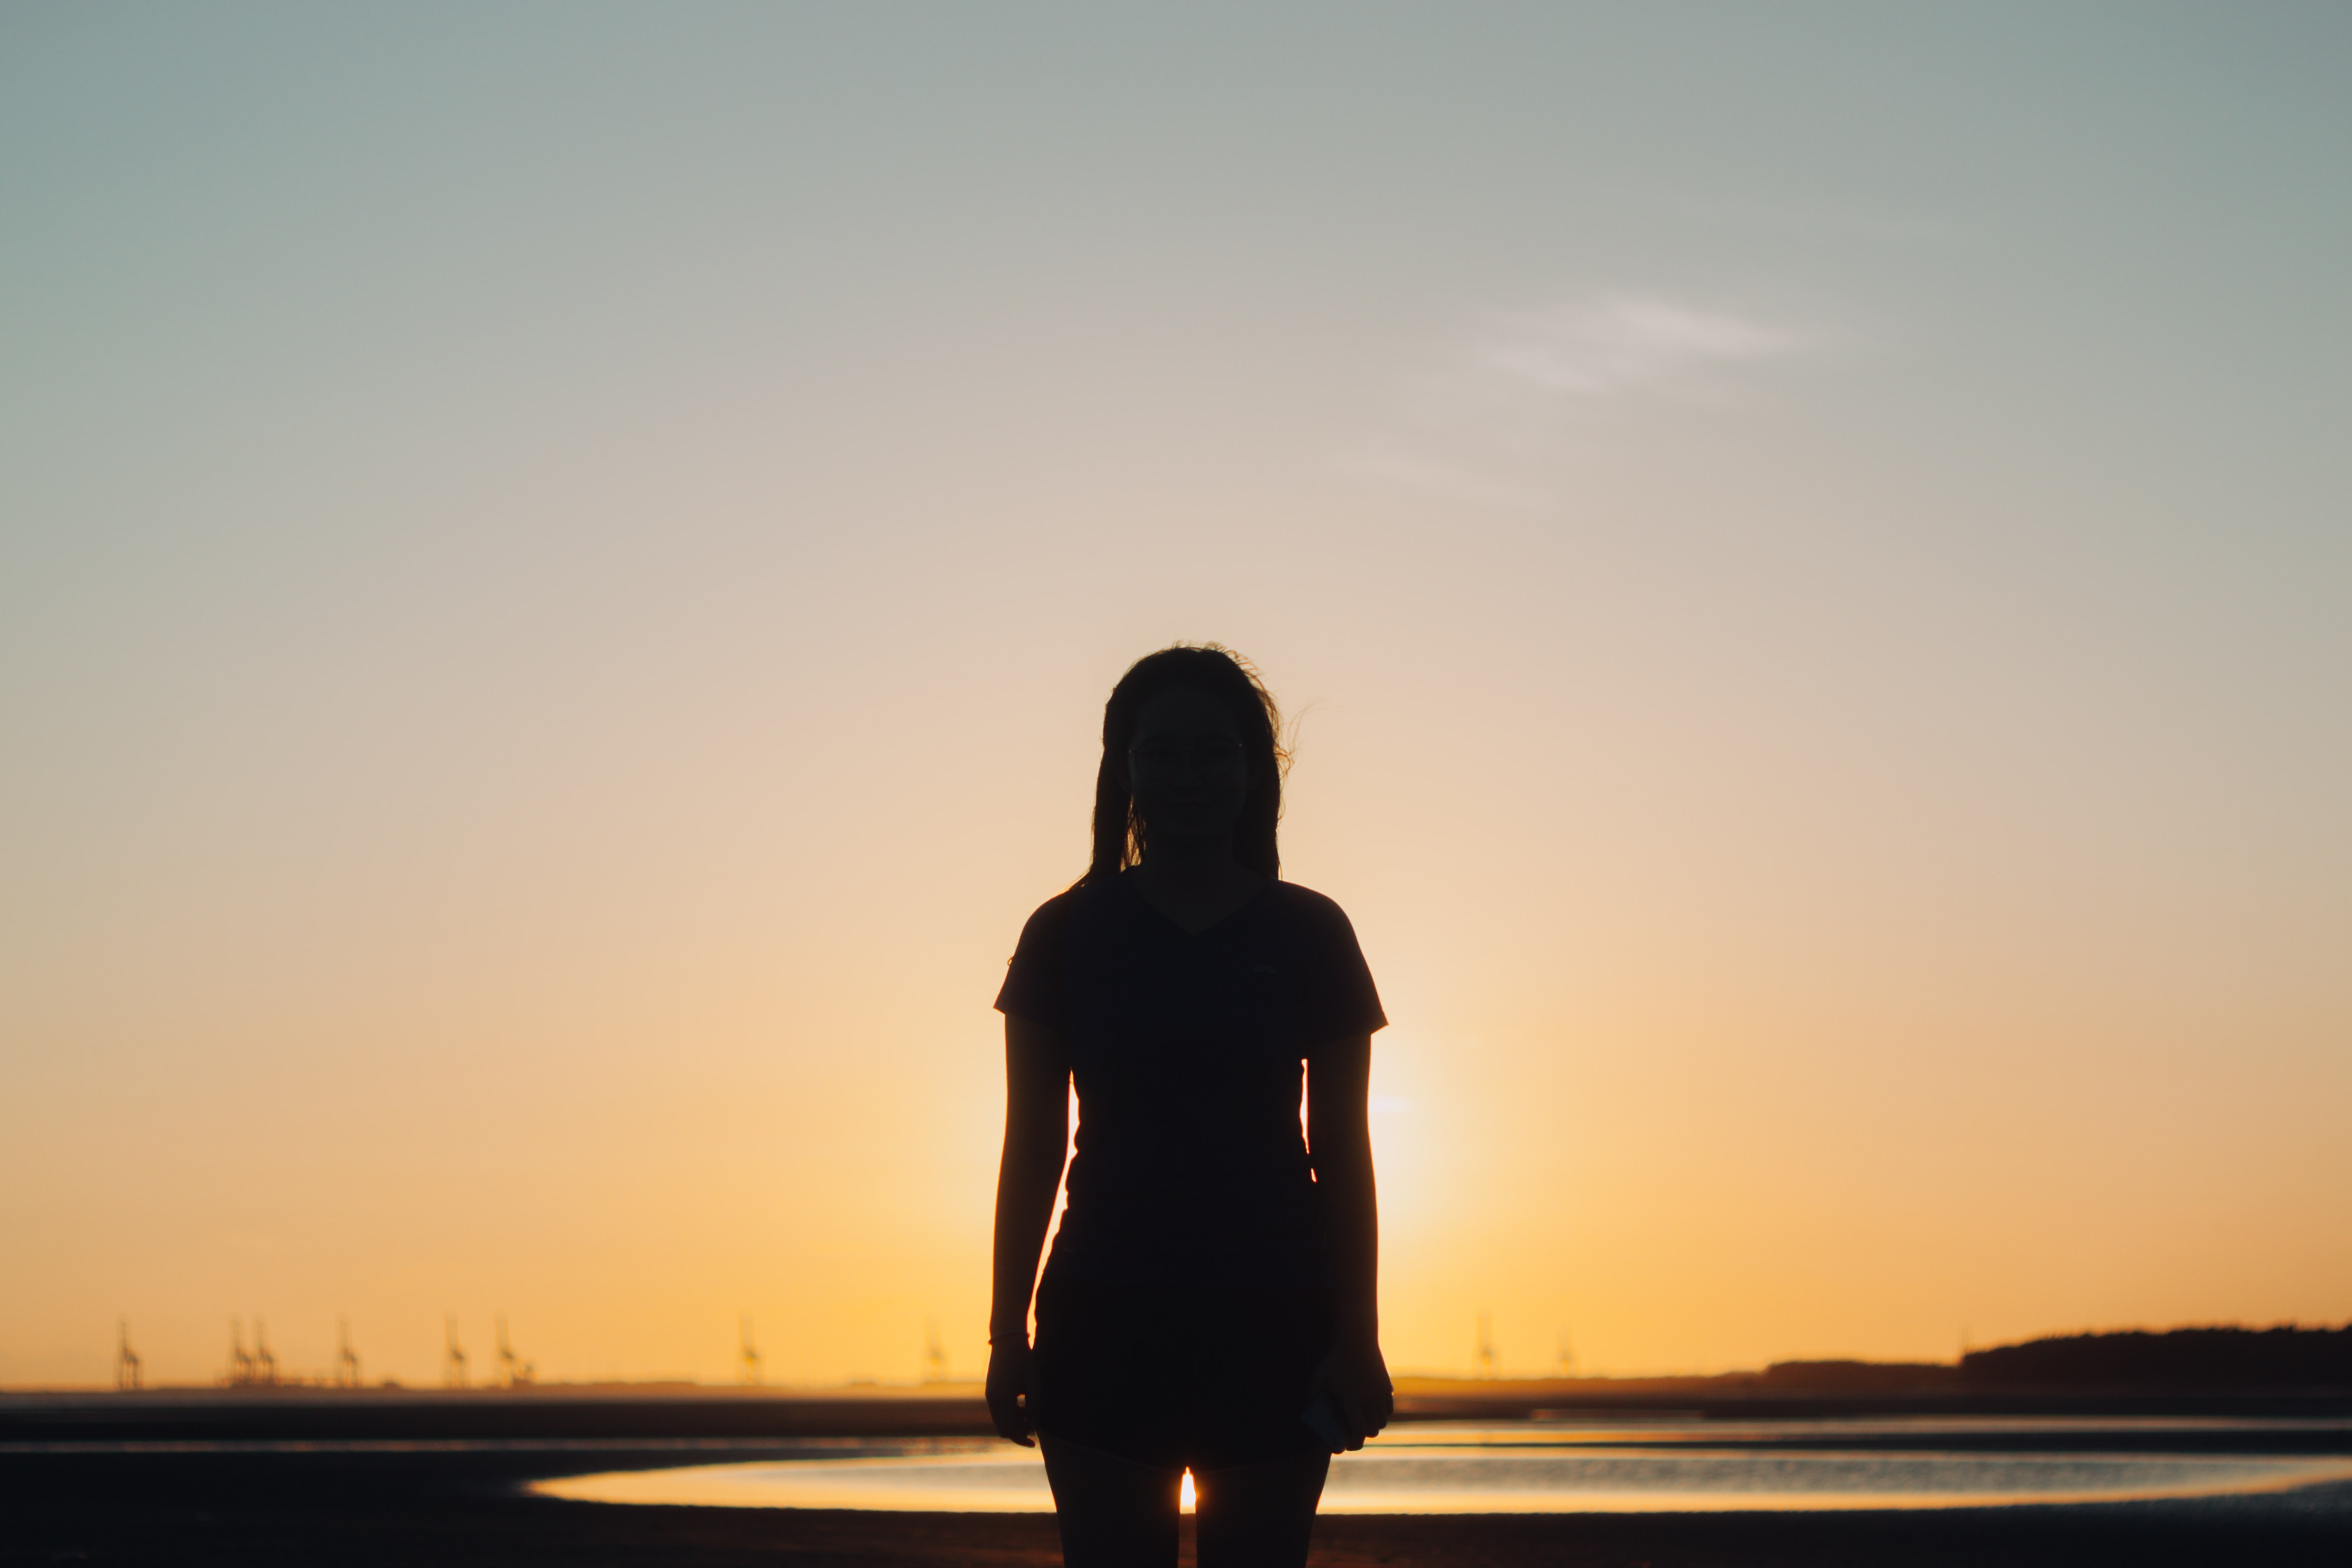 silhouette photography of woman standing in front of body of water